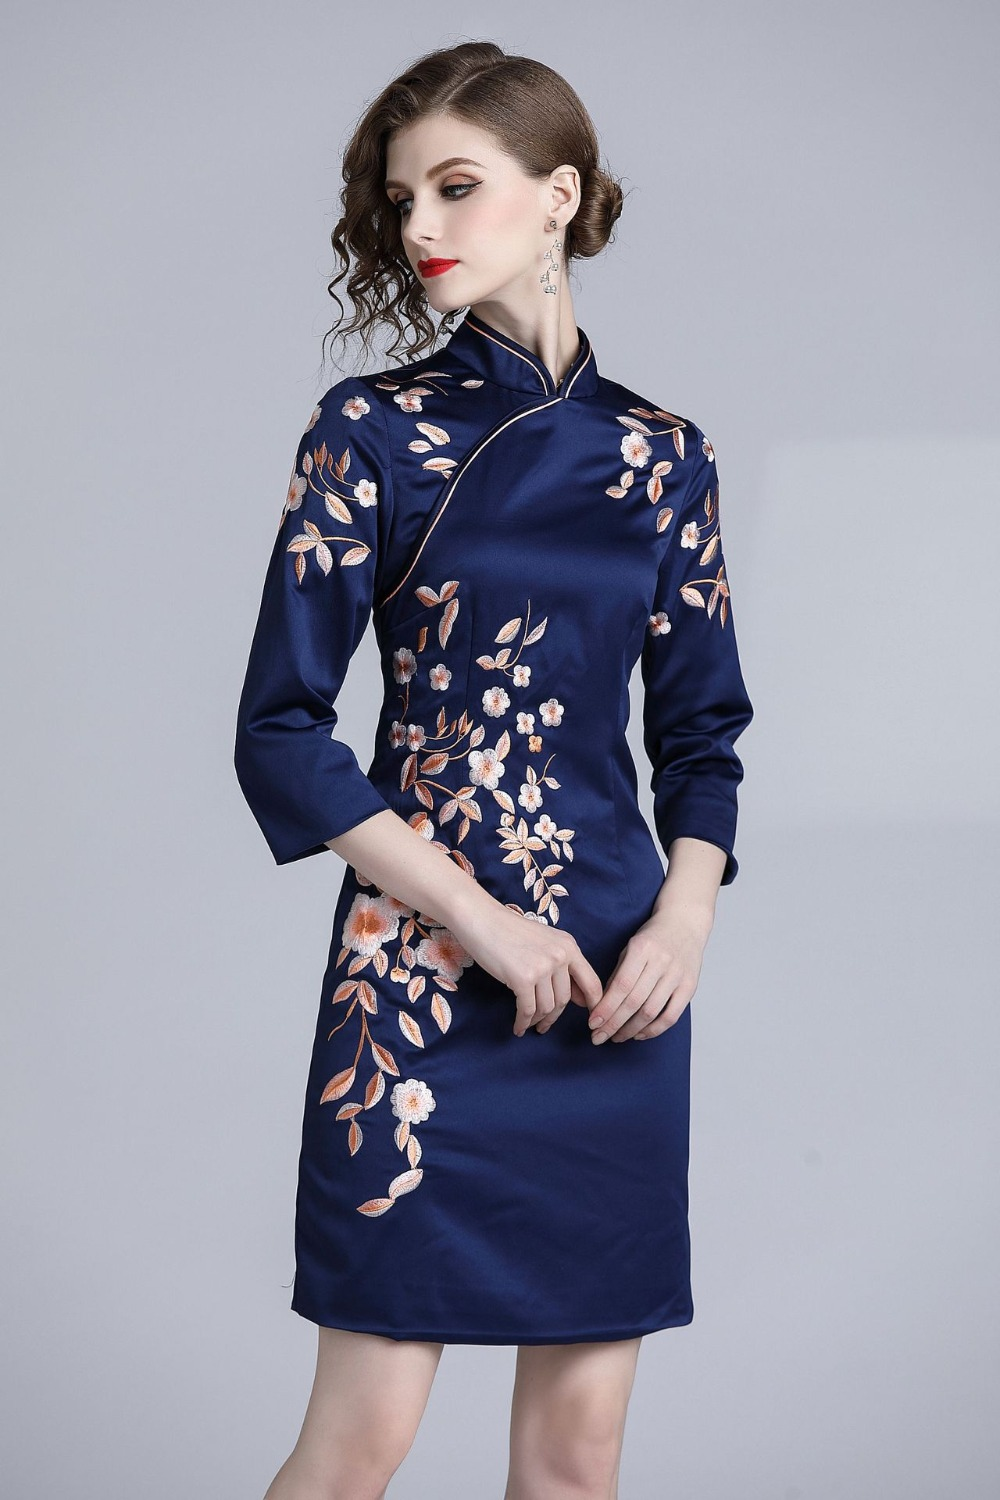 2018 Chinese style modern qipao embroidery lady party dress